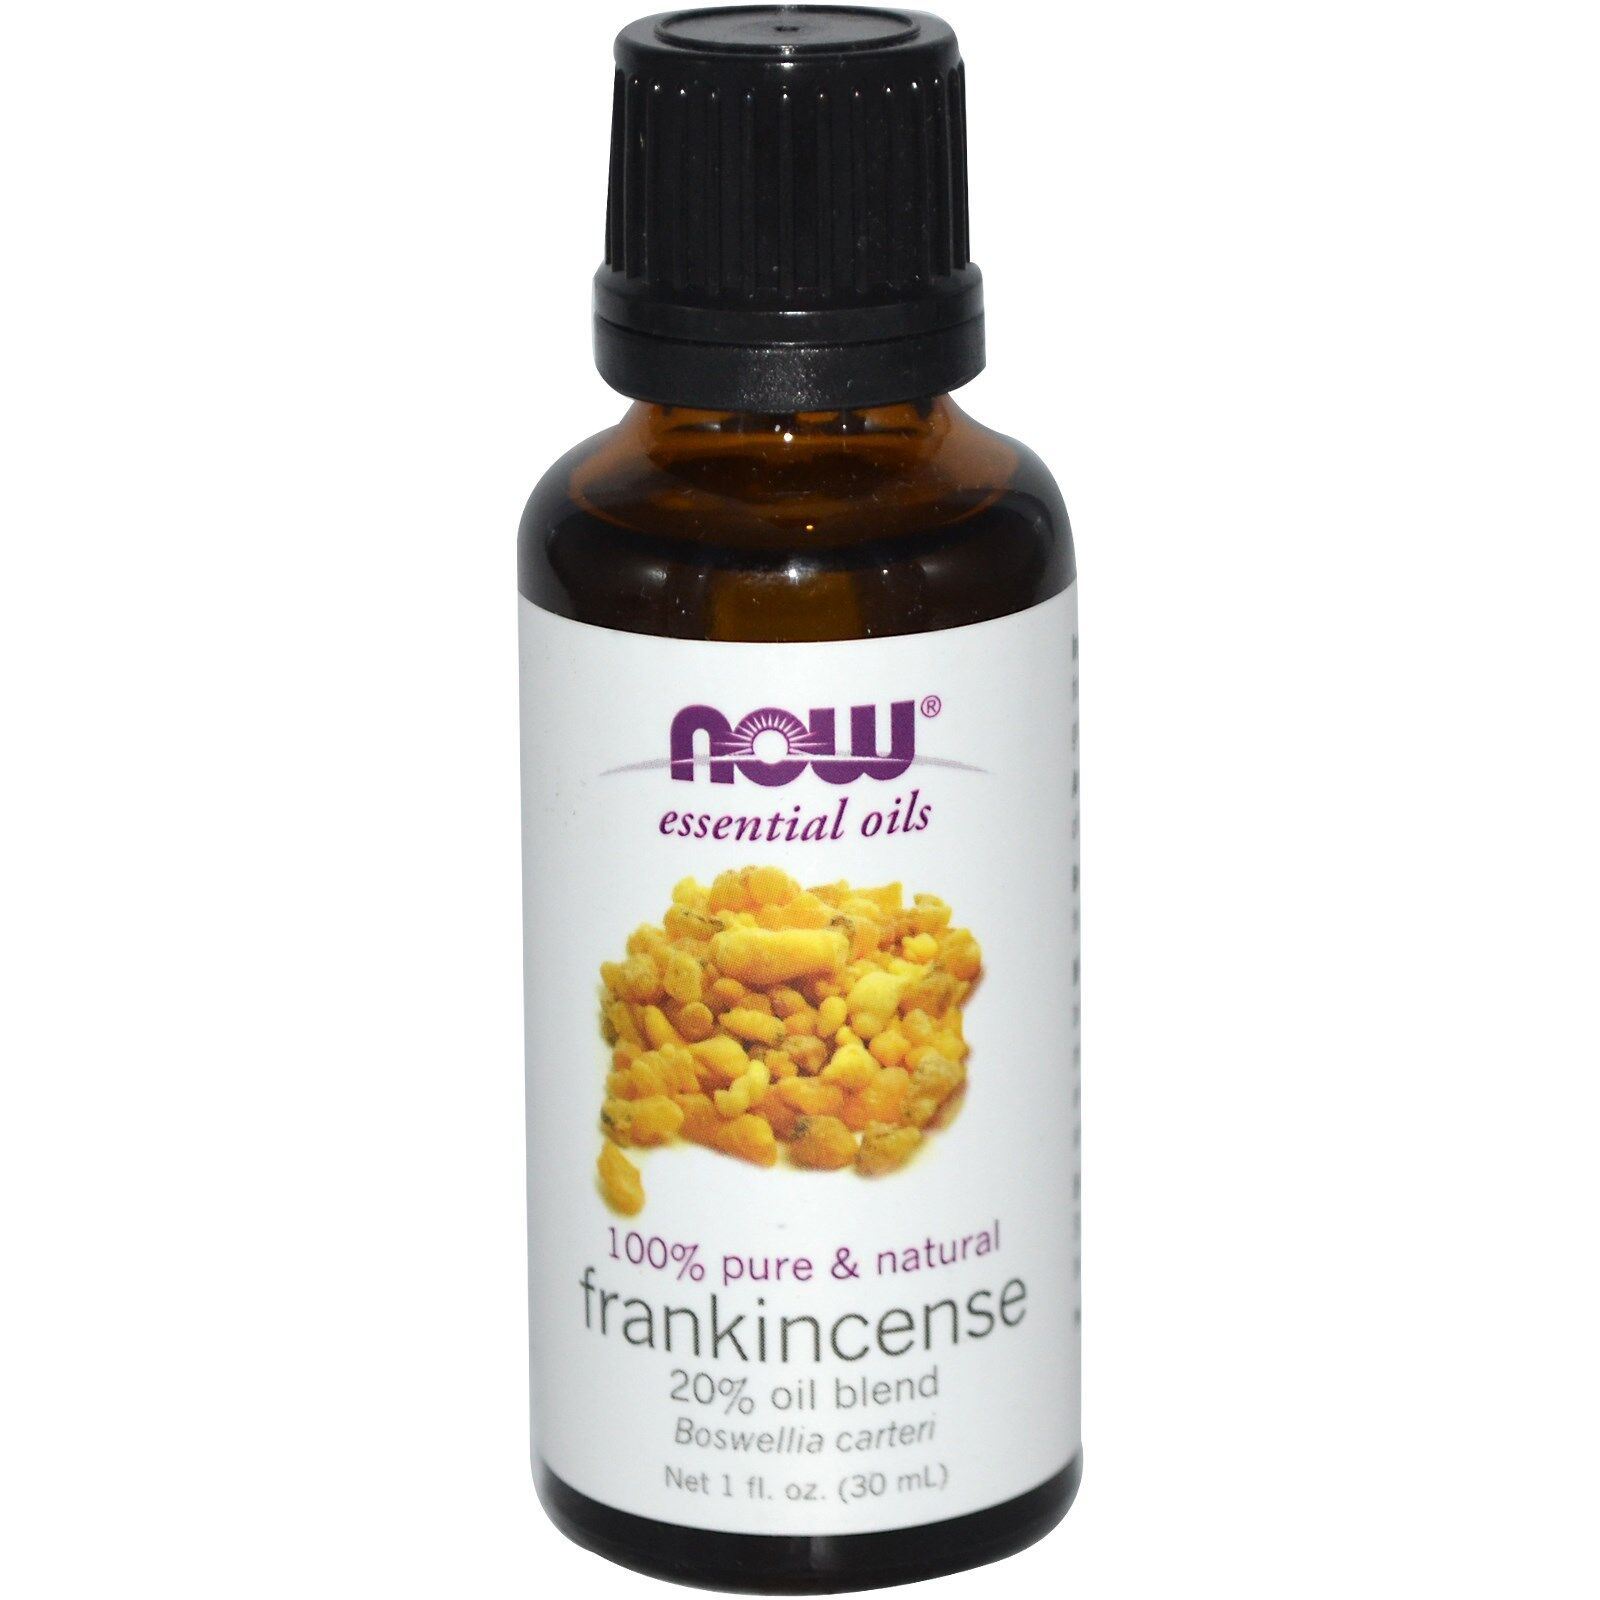 NOW Foods 1 oz Essential Oils and Blend Oils - FREE SHIPPING! Frankincense 20% Blend